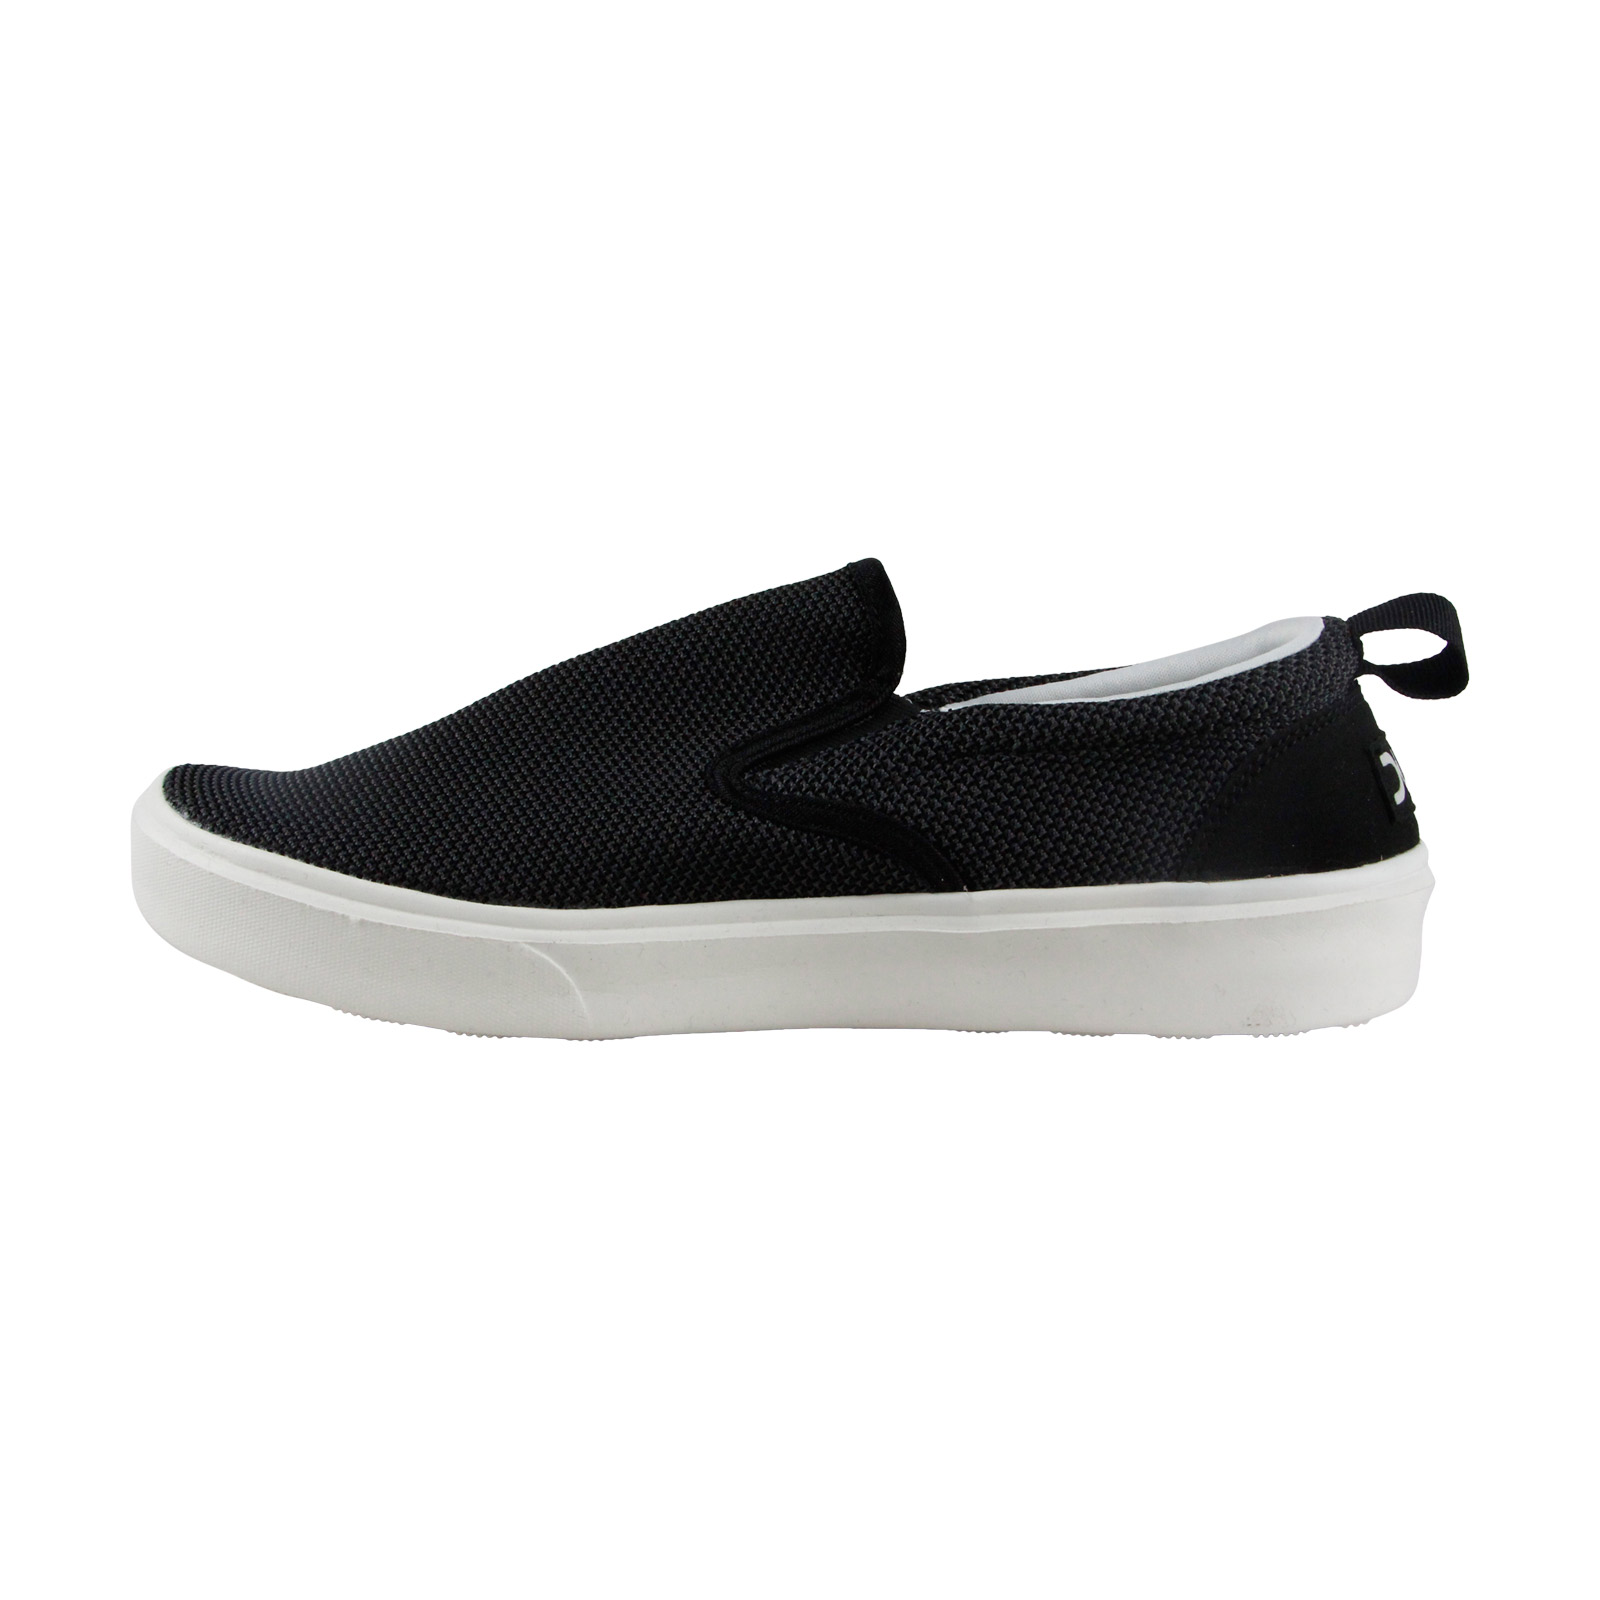 Hey Dude Flip Slip On Mens Black Canvas Slip On Sneakers Shoes